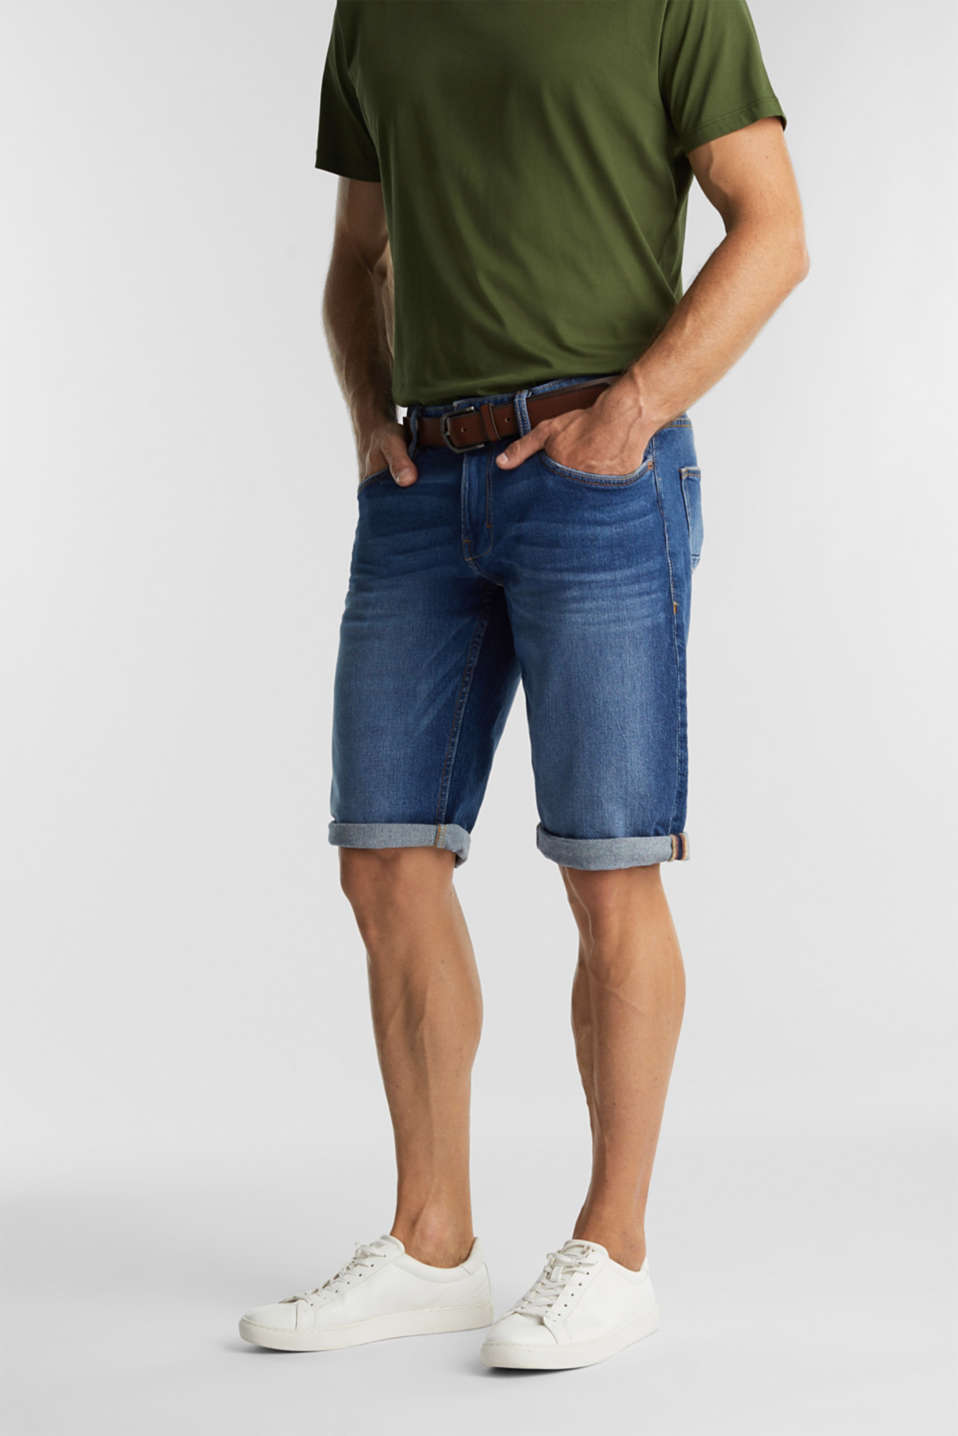 Esprit - Denim shorts with a belt and organic cotton